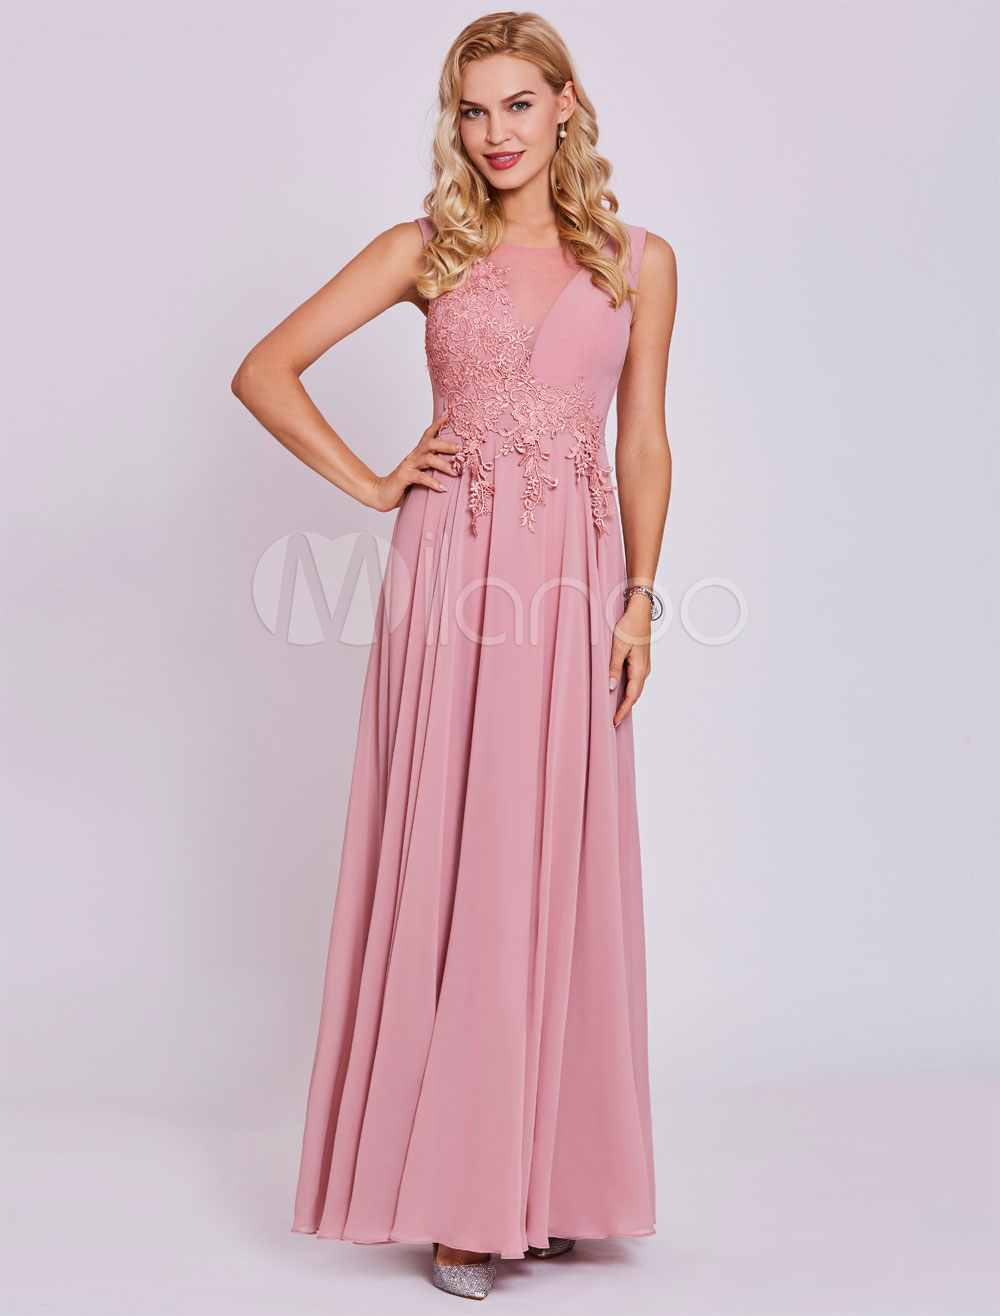 Prom Dresses 2018 Long Lace Applique Chiffon Sleeveless Illusion Cameo Pink Formal Party Dress (Wedding Cheap Party Dress) photo